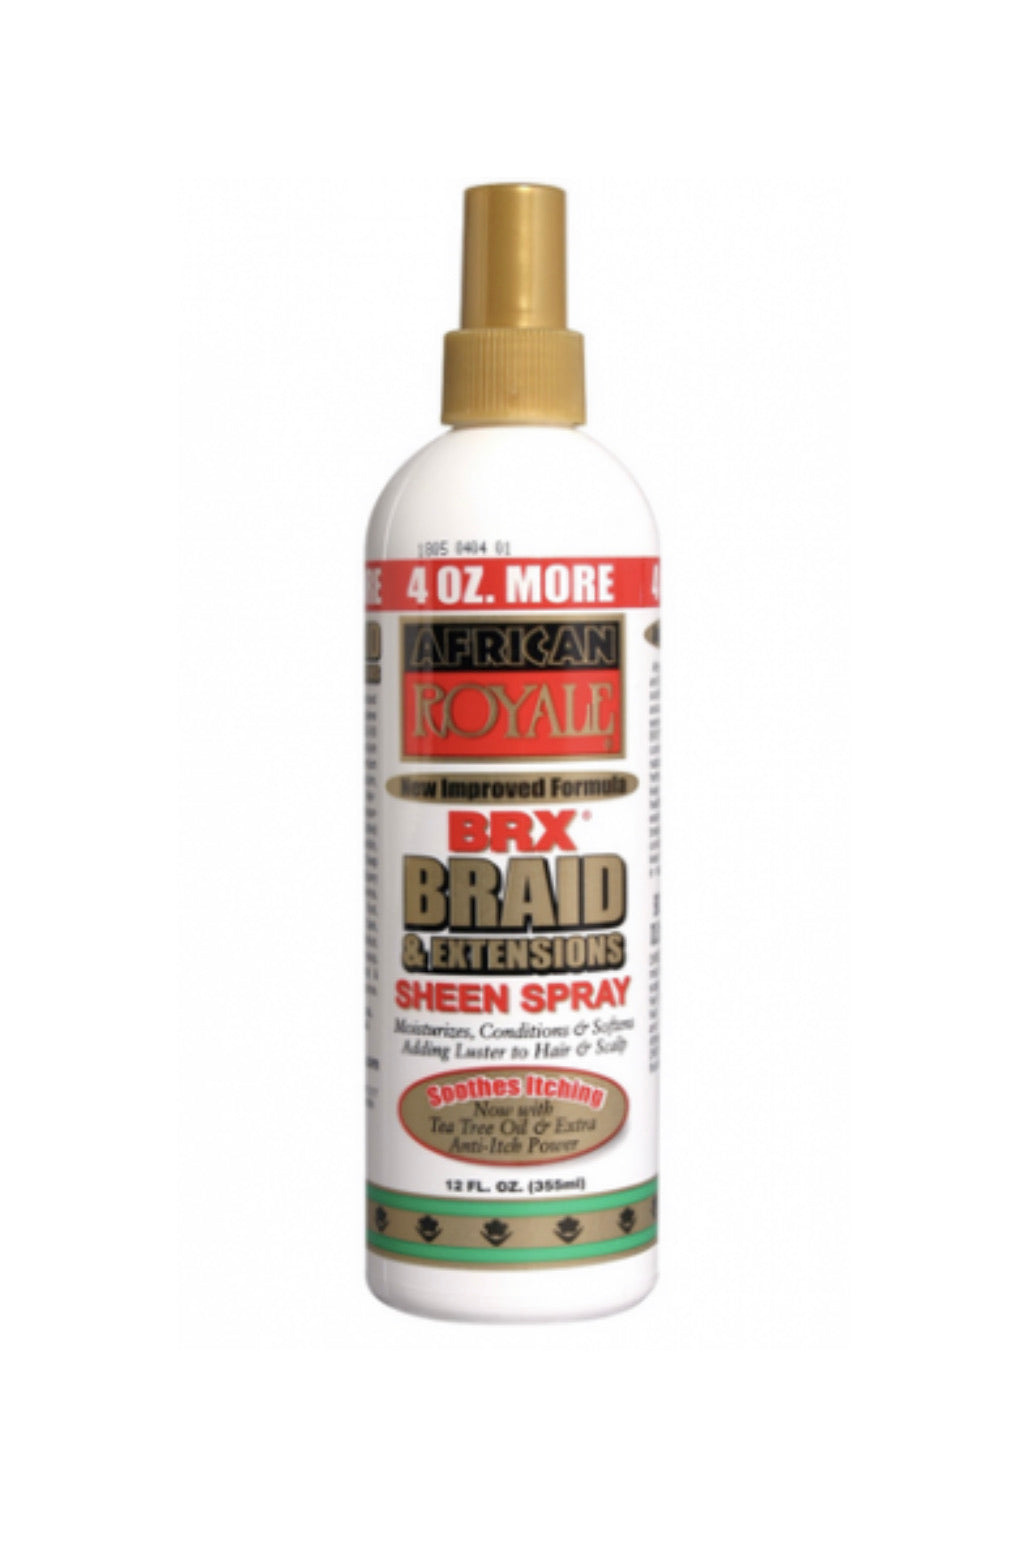 African Royale BRX Braid & Extentions Sheen Spray 12 FL oz